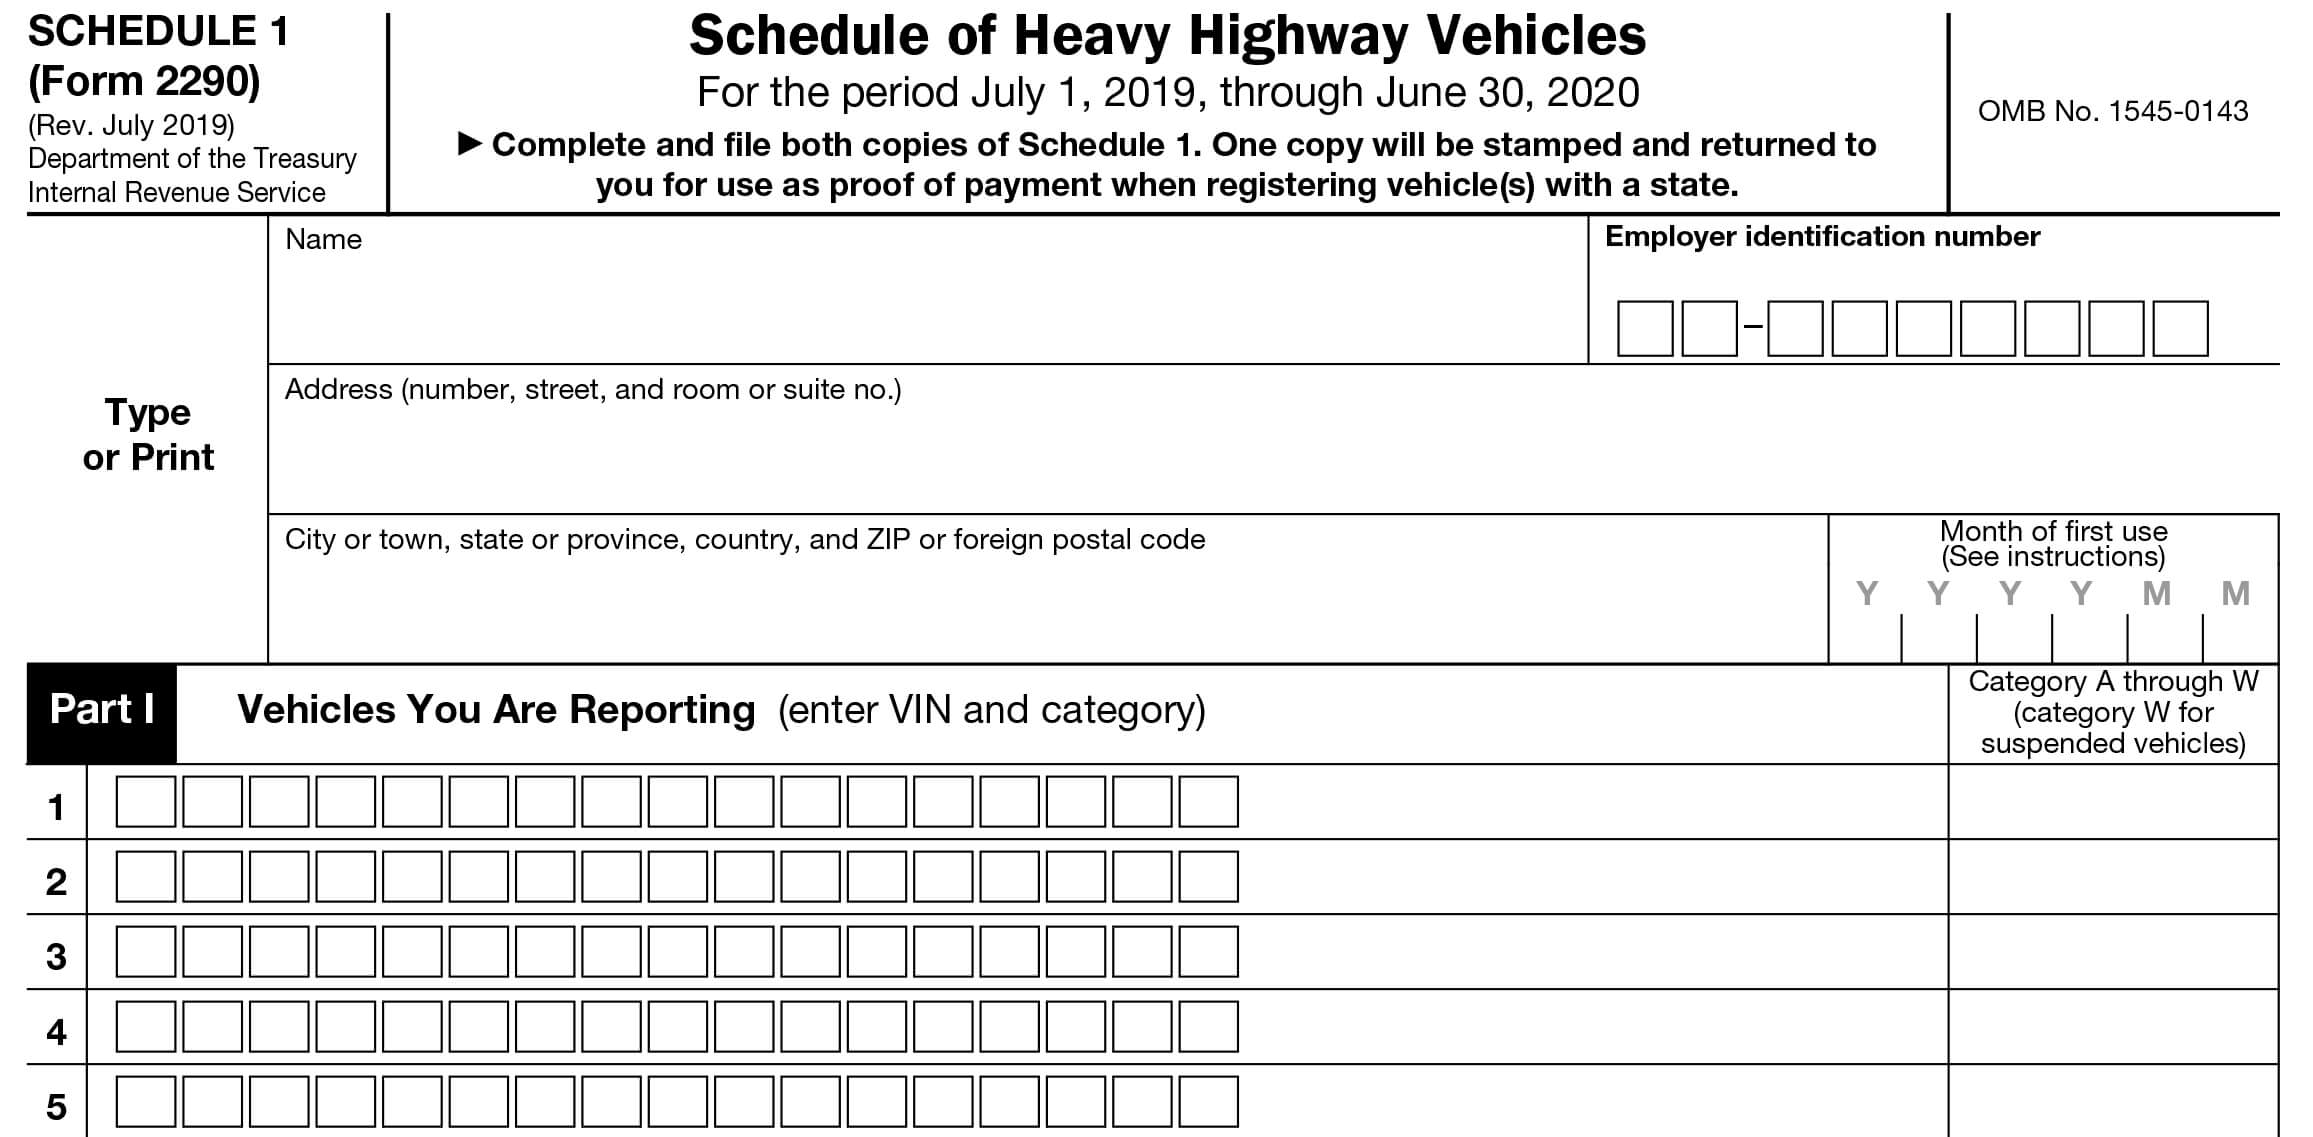 IRS 2290 Schedule 1, proof of HVUT payment